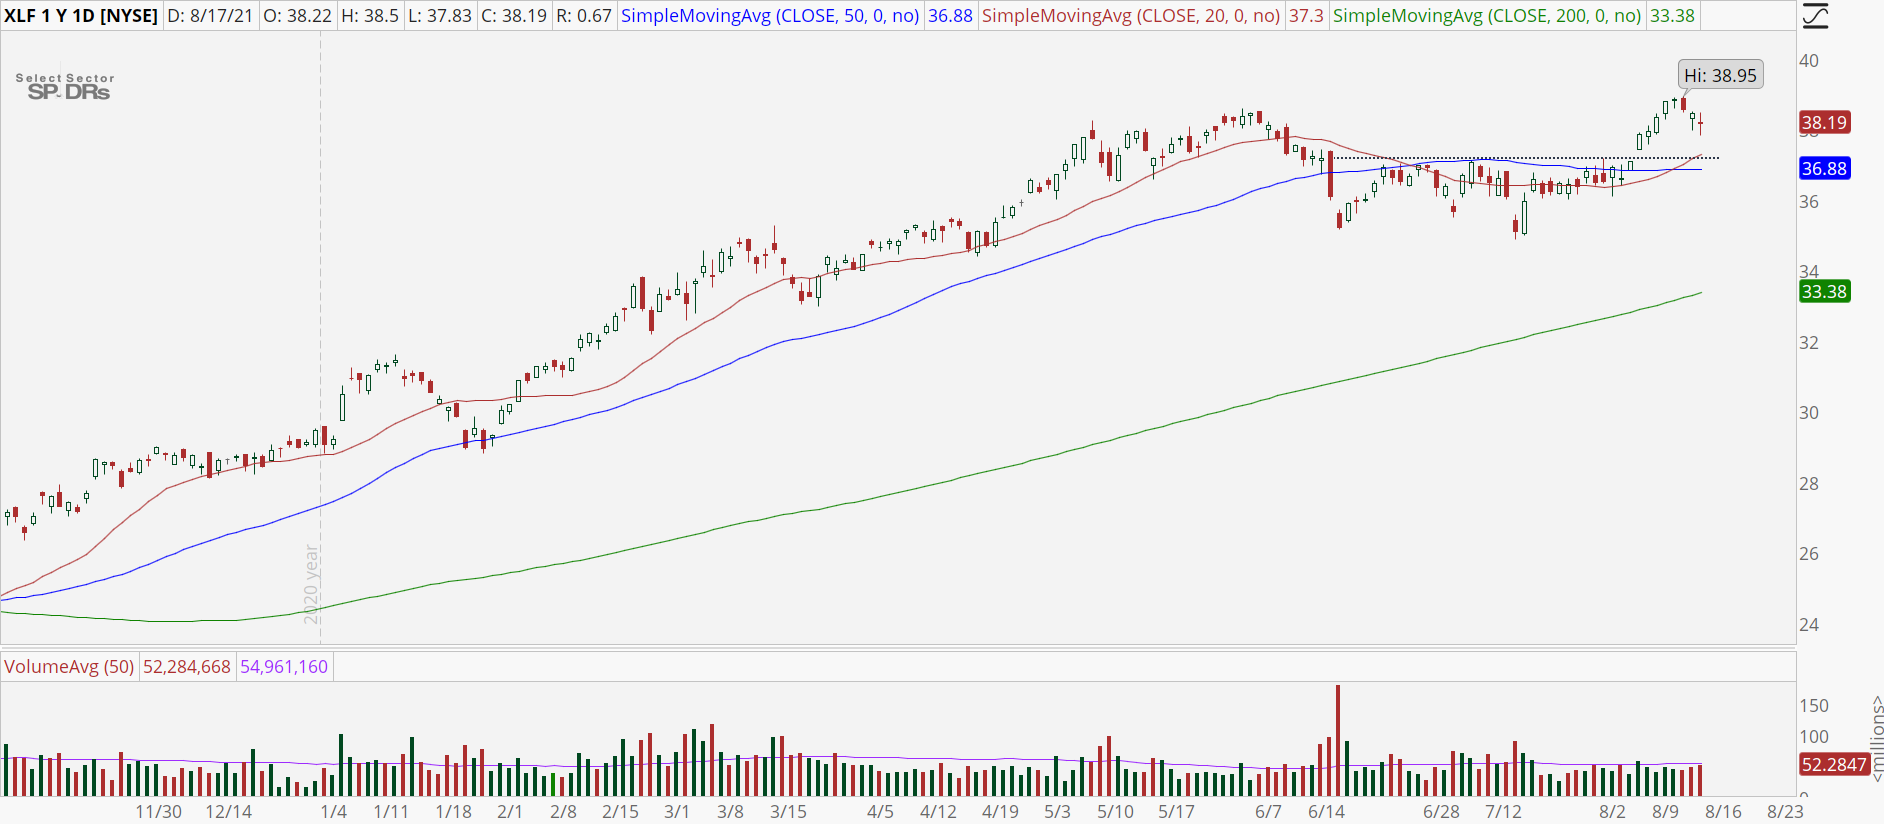 Financial Sector (XLF) stock chart with bull retracement